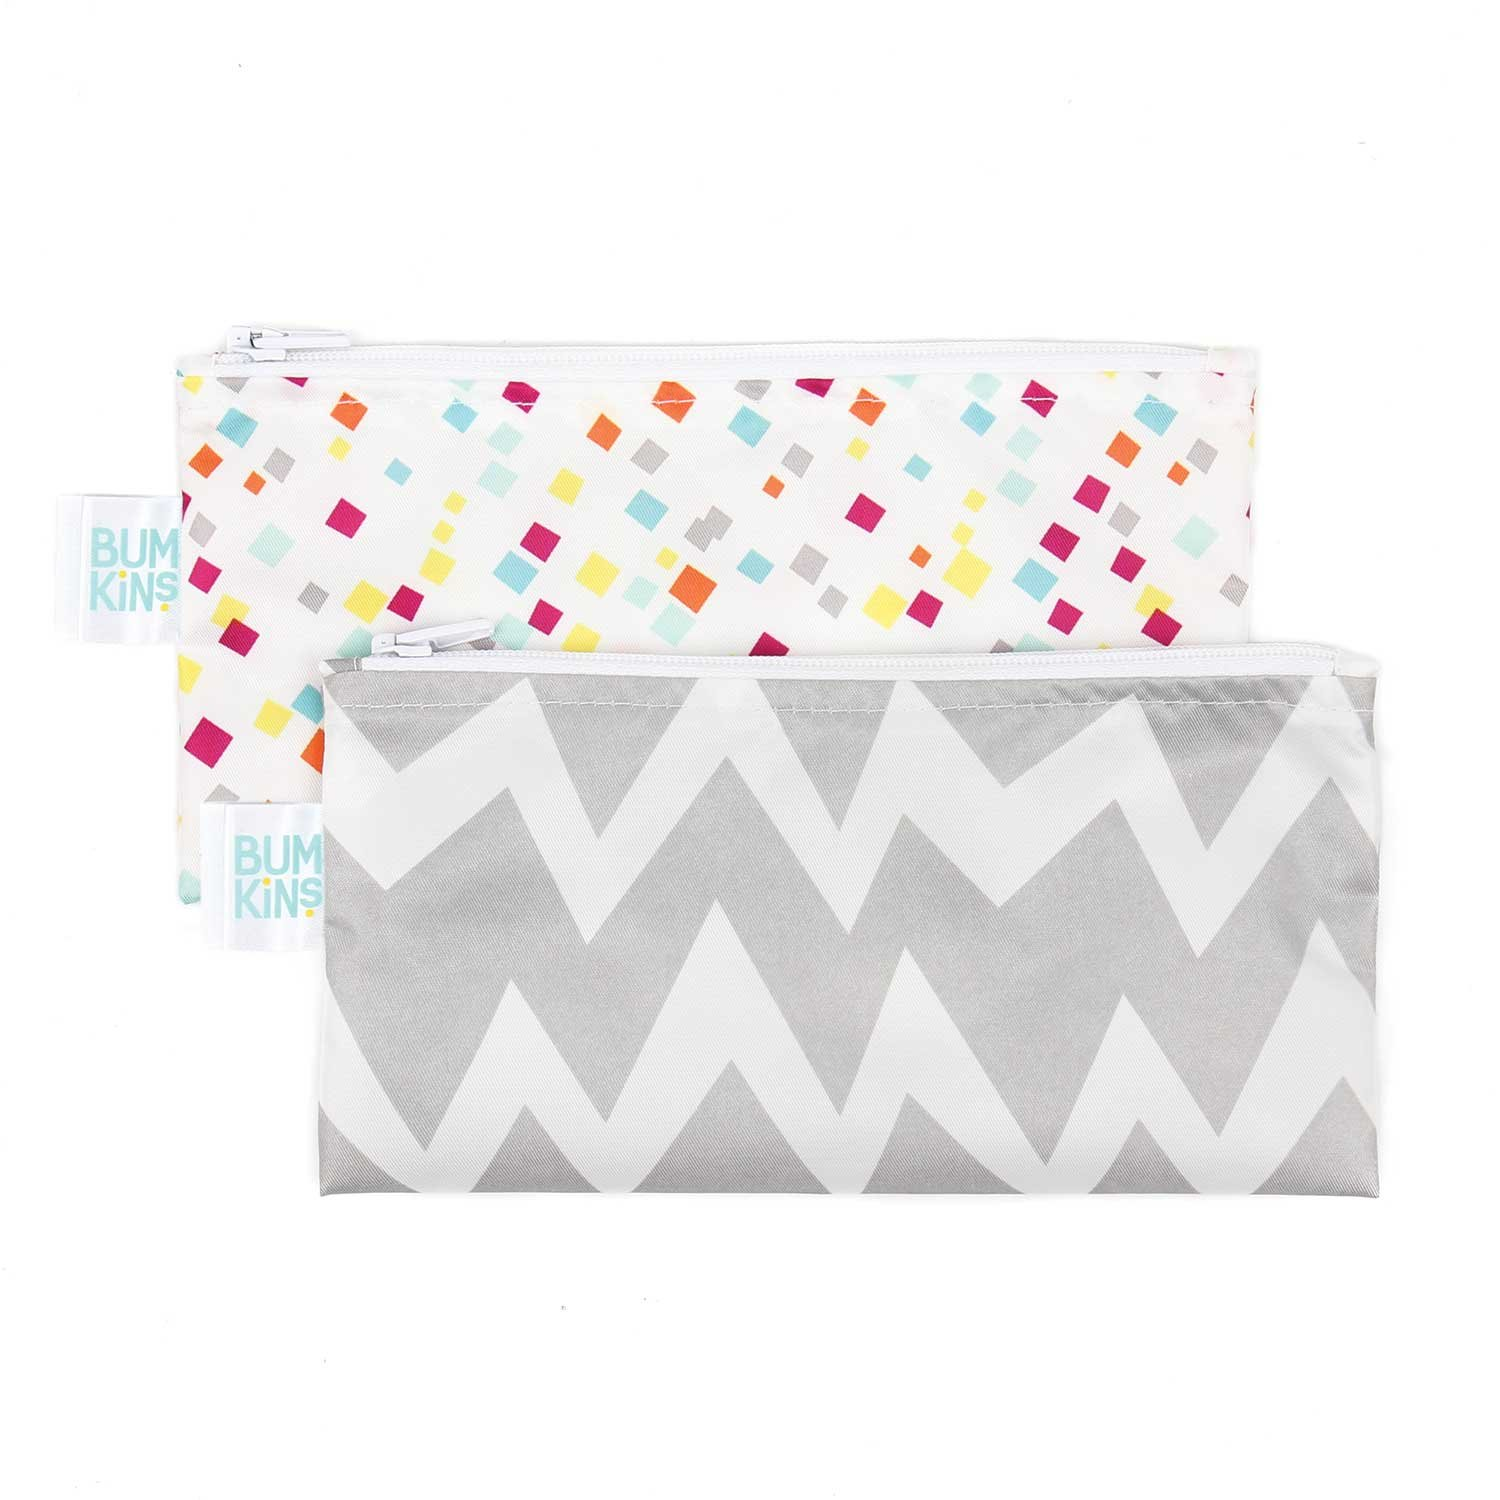 Bumkins Reusable Snack Bag Small 2 Pack, Gray Chevron/Confetti SBS2-G48